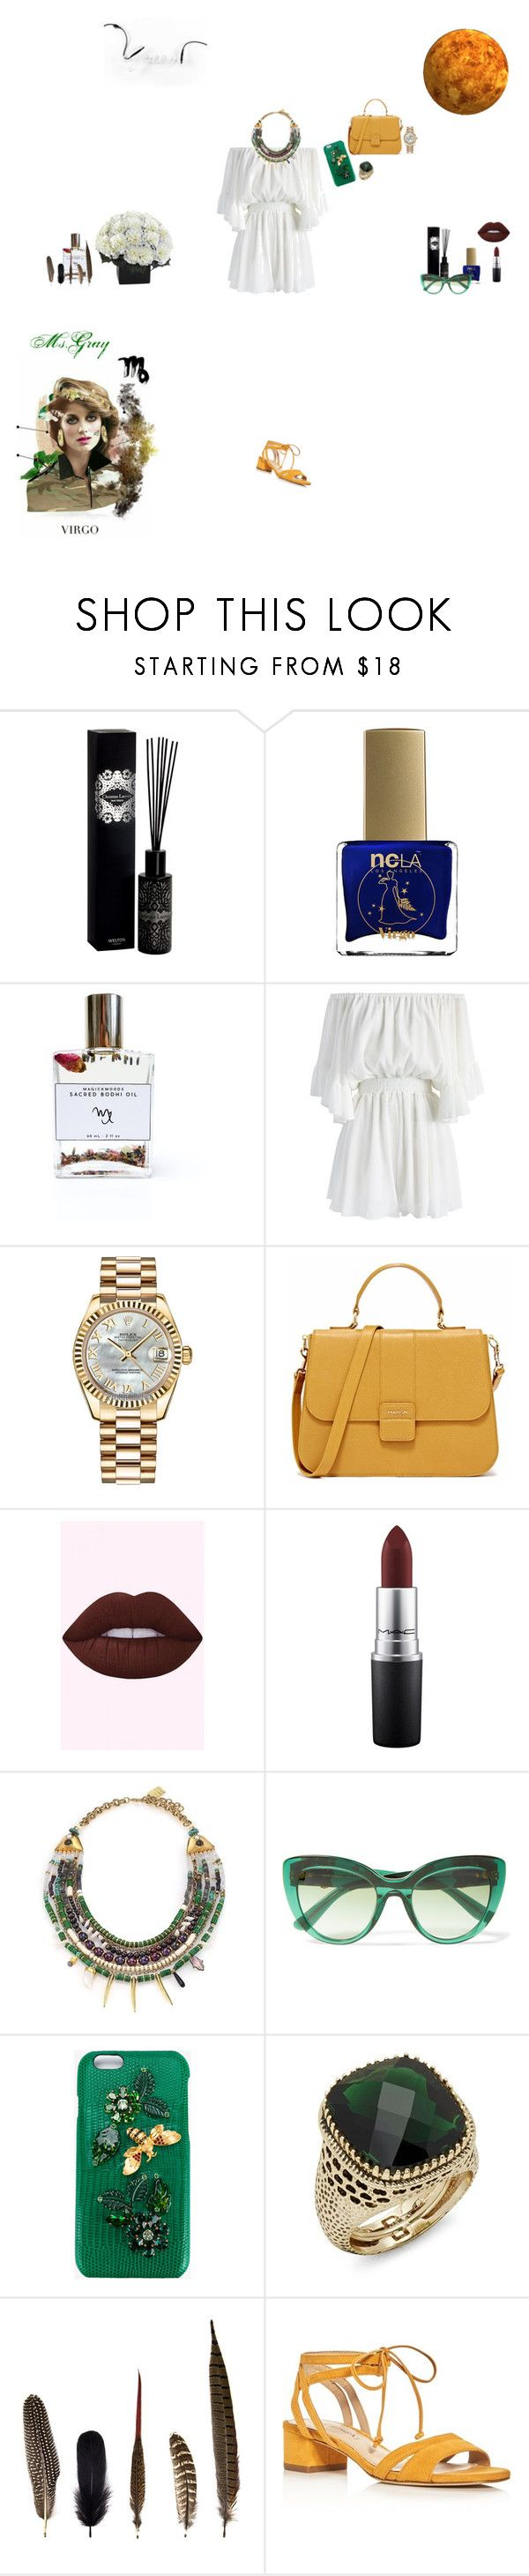 """""""Virgo hermit"""" by fmsgray on Polyvore featuring Welton London, ncLA, Bodhi, Chicwish, Rolex, MAC Cosmetics, Lizzie Fortunato, Dolce&Gabbana, Saks Fifth Avenue and Mineheart"""